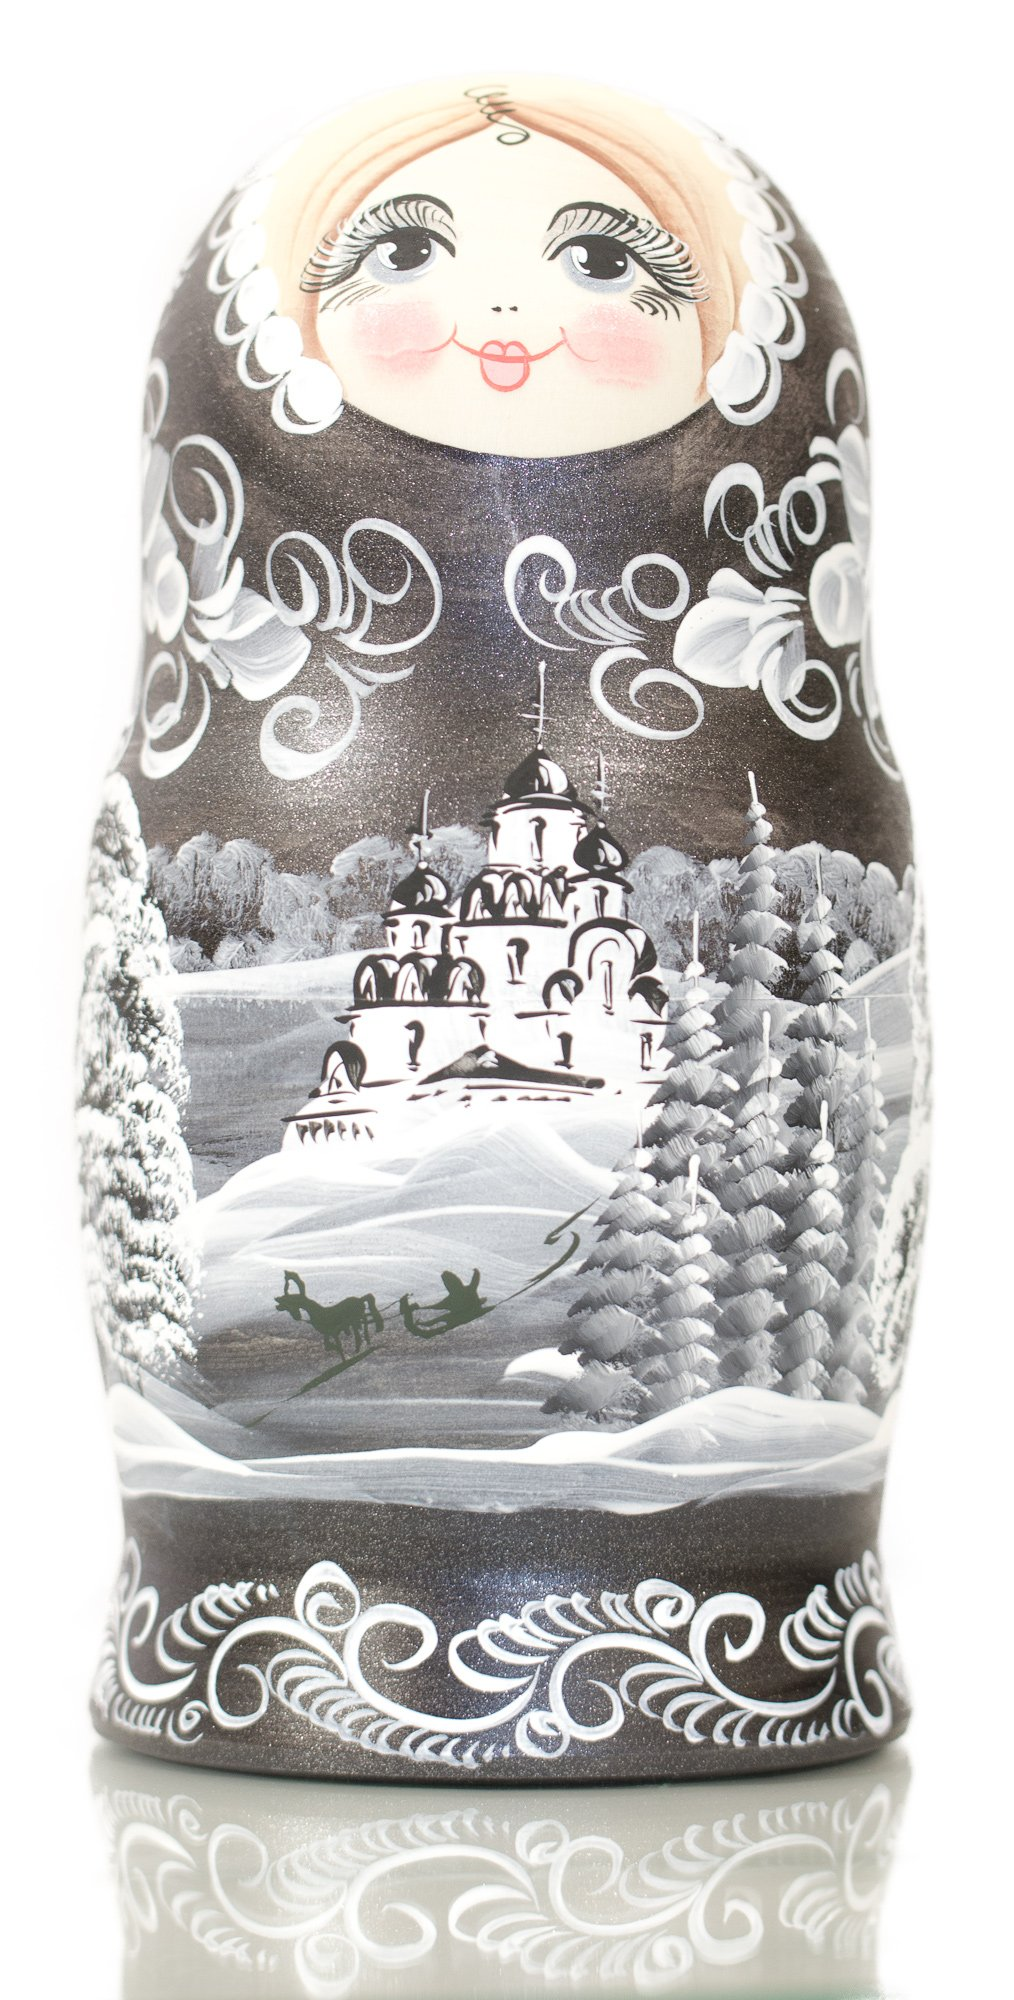 Russian Nesting Doll - ''Winter`s Tale'' - Hand Painted in Russia - MOSCOW KREMLIN GIFT BOX - Wooden Decoration Gift Doll - Traditional Matryoshka Babushka (8`` (7 dolls in 1), Silver Night) by craftsfromrussia (Image #6)